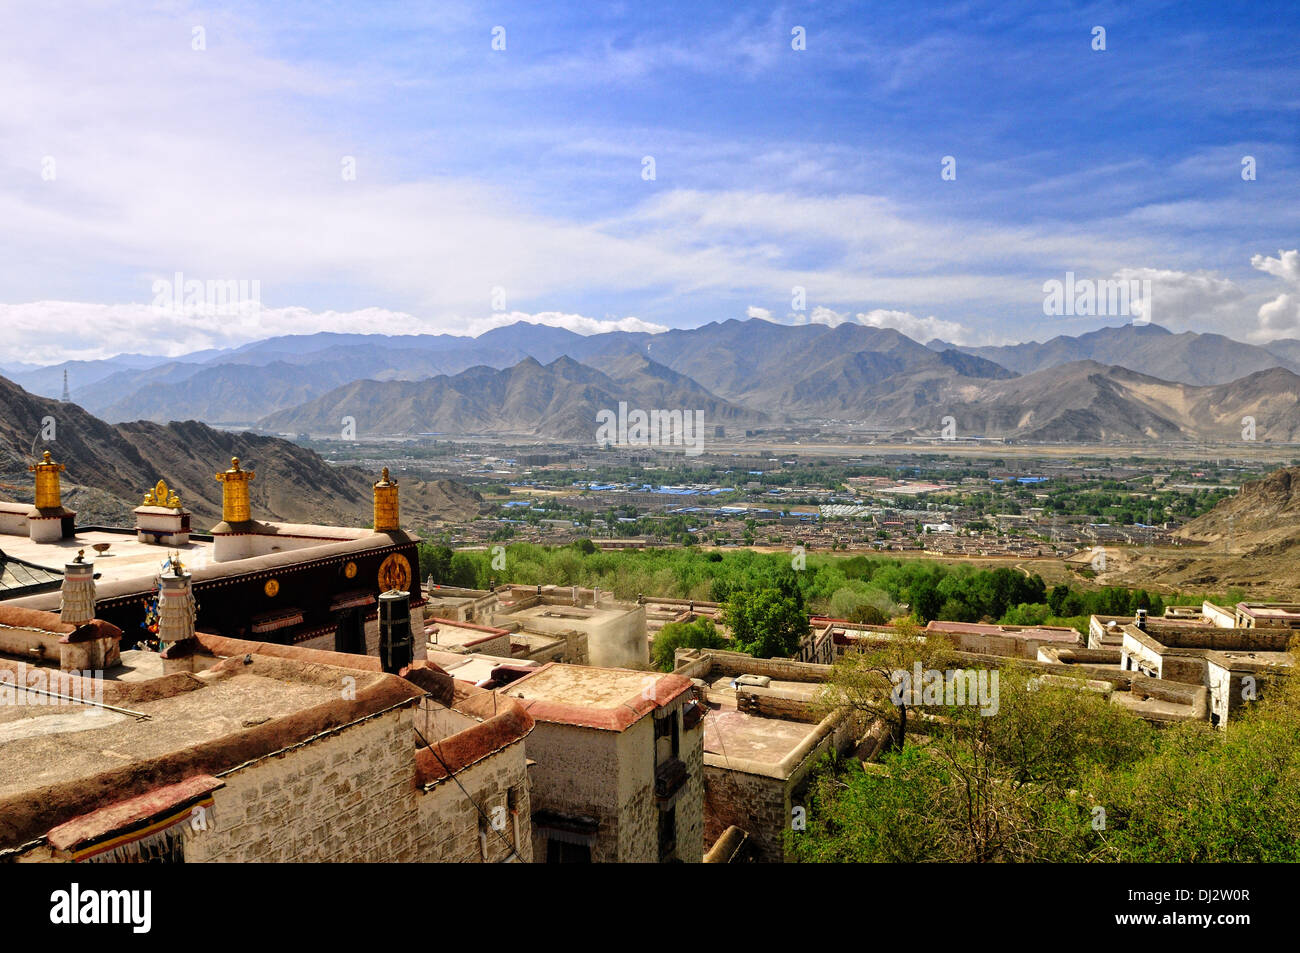 Lhasa Tibet China - Stock Image